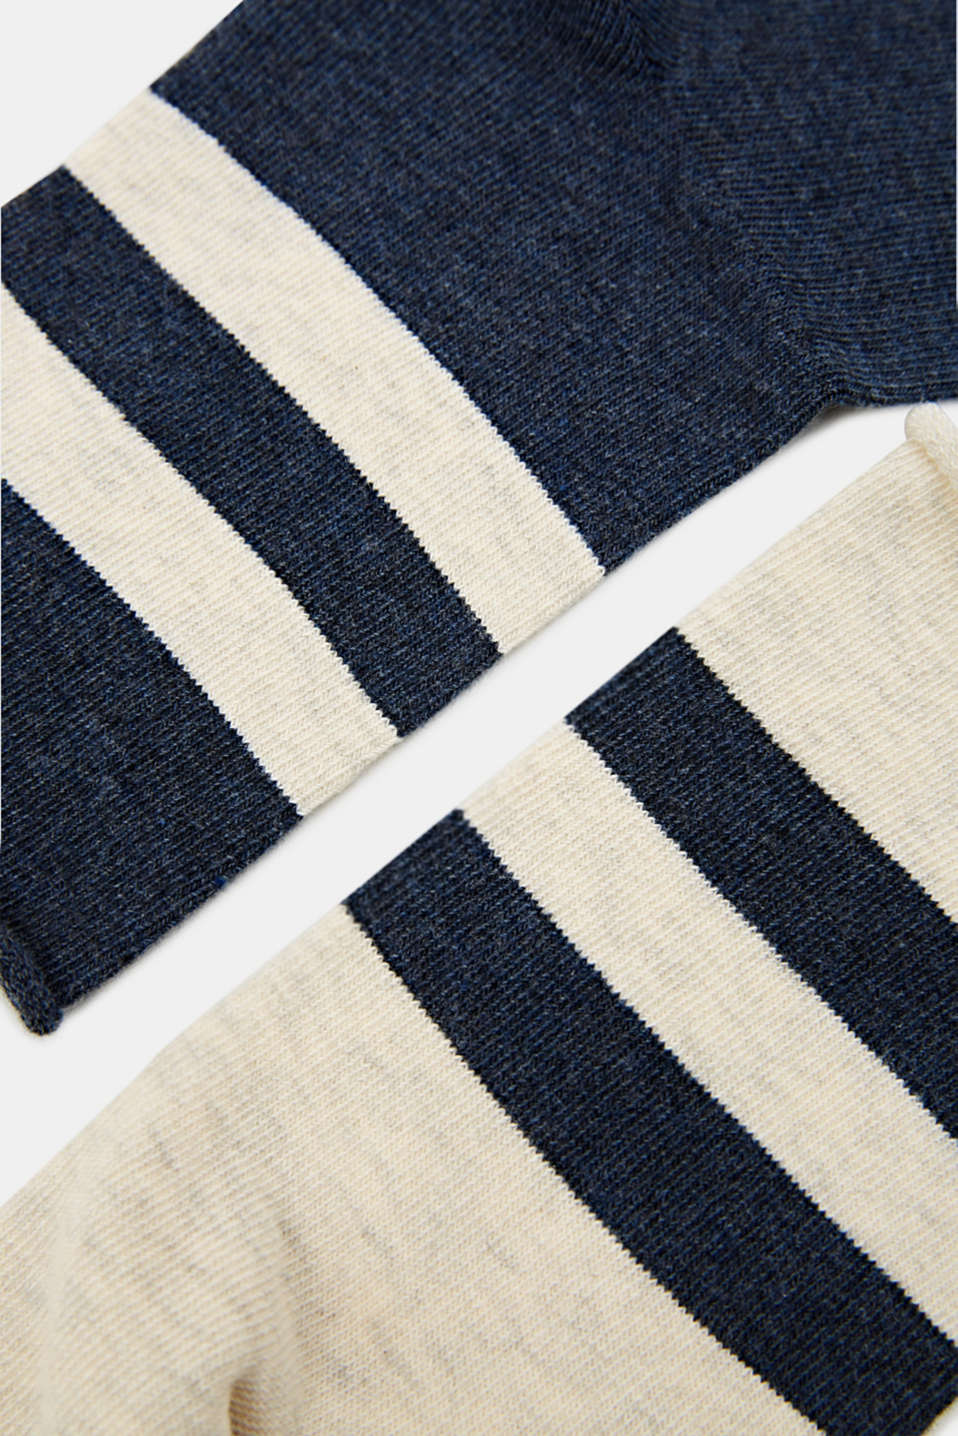 Double pack: socks with perfectly positioned stripes, SORTIMENT, detail image number 1